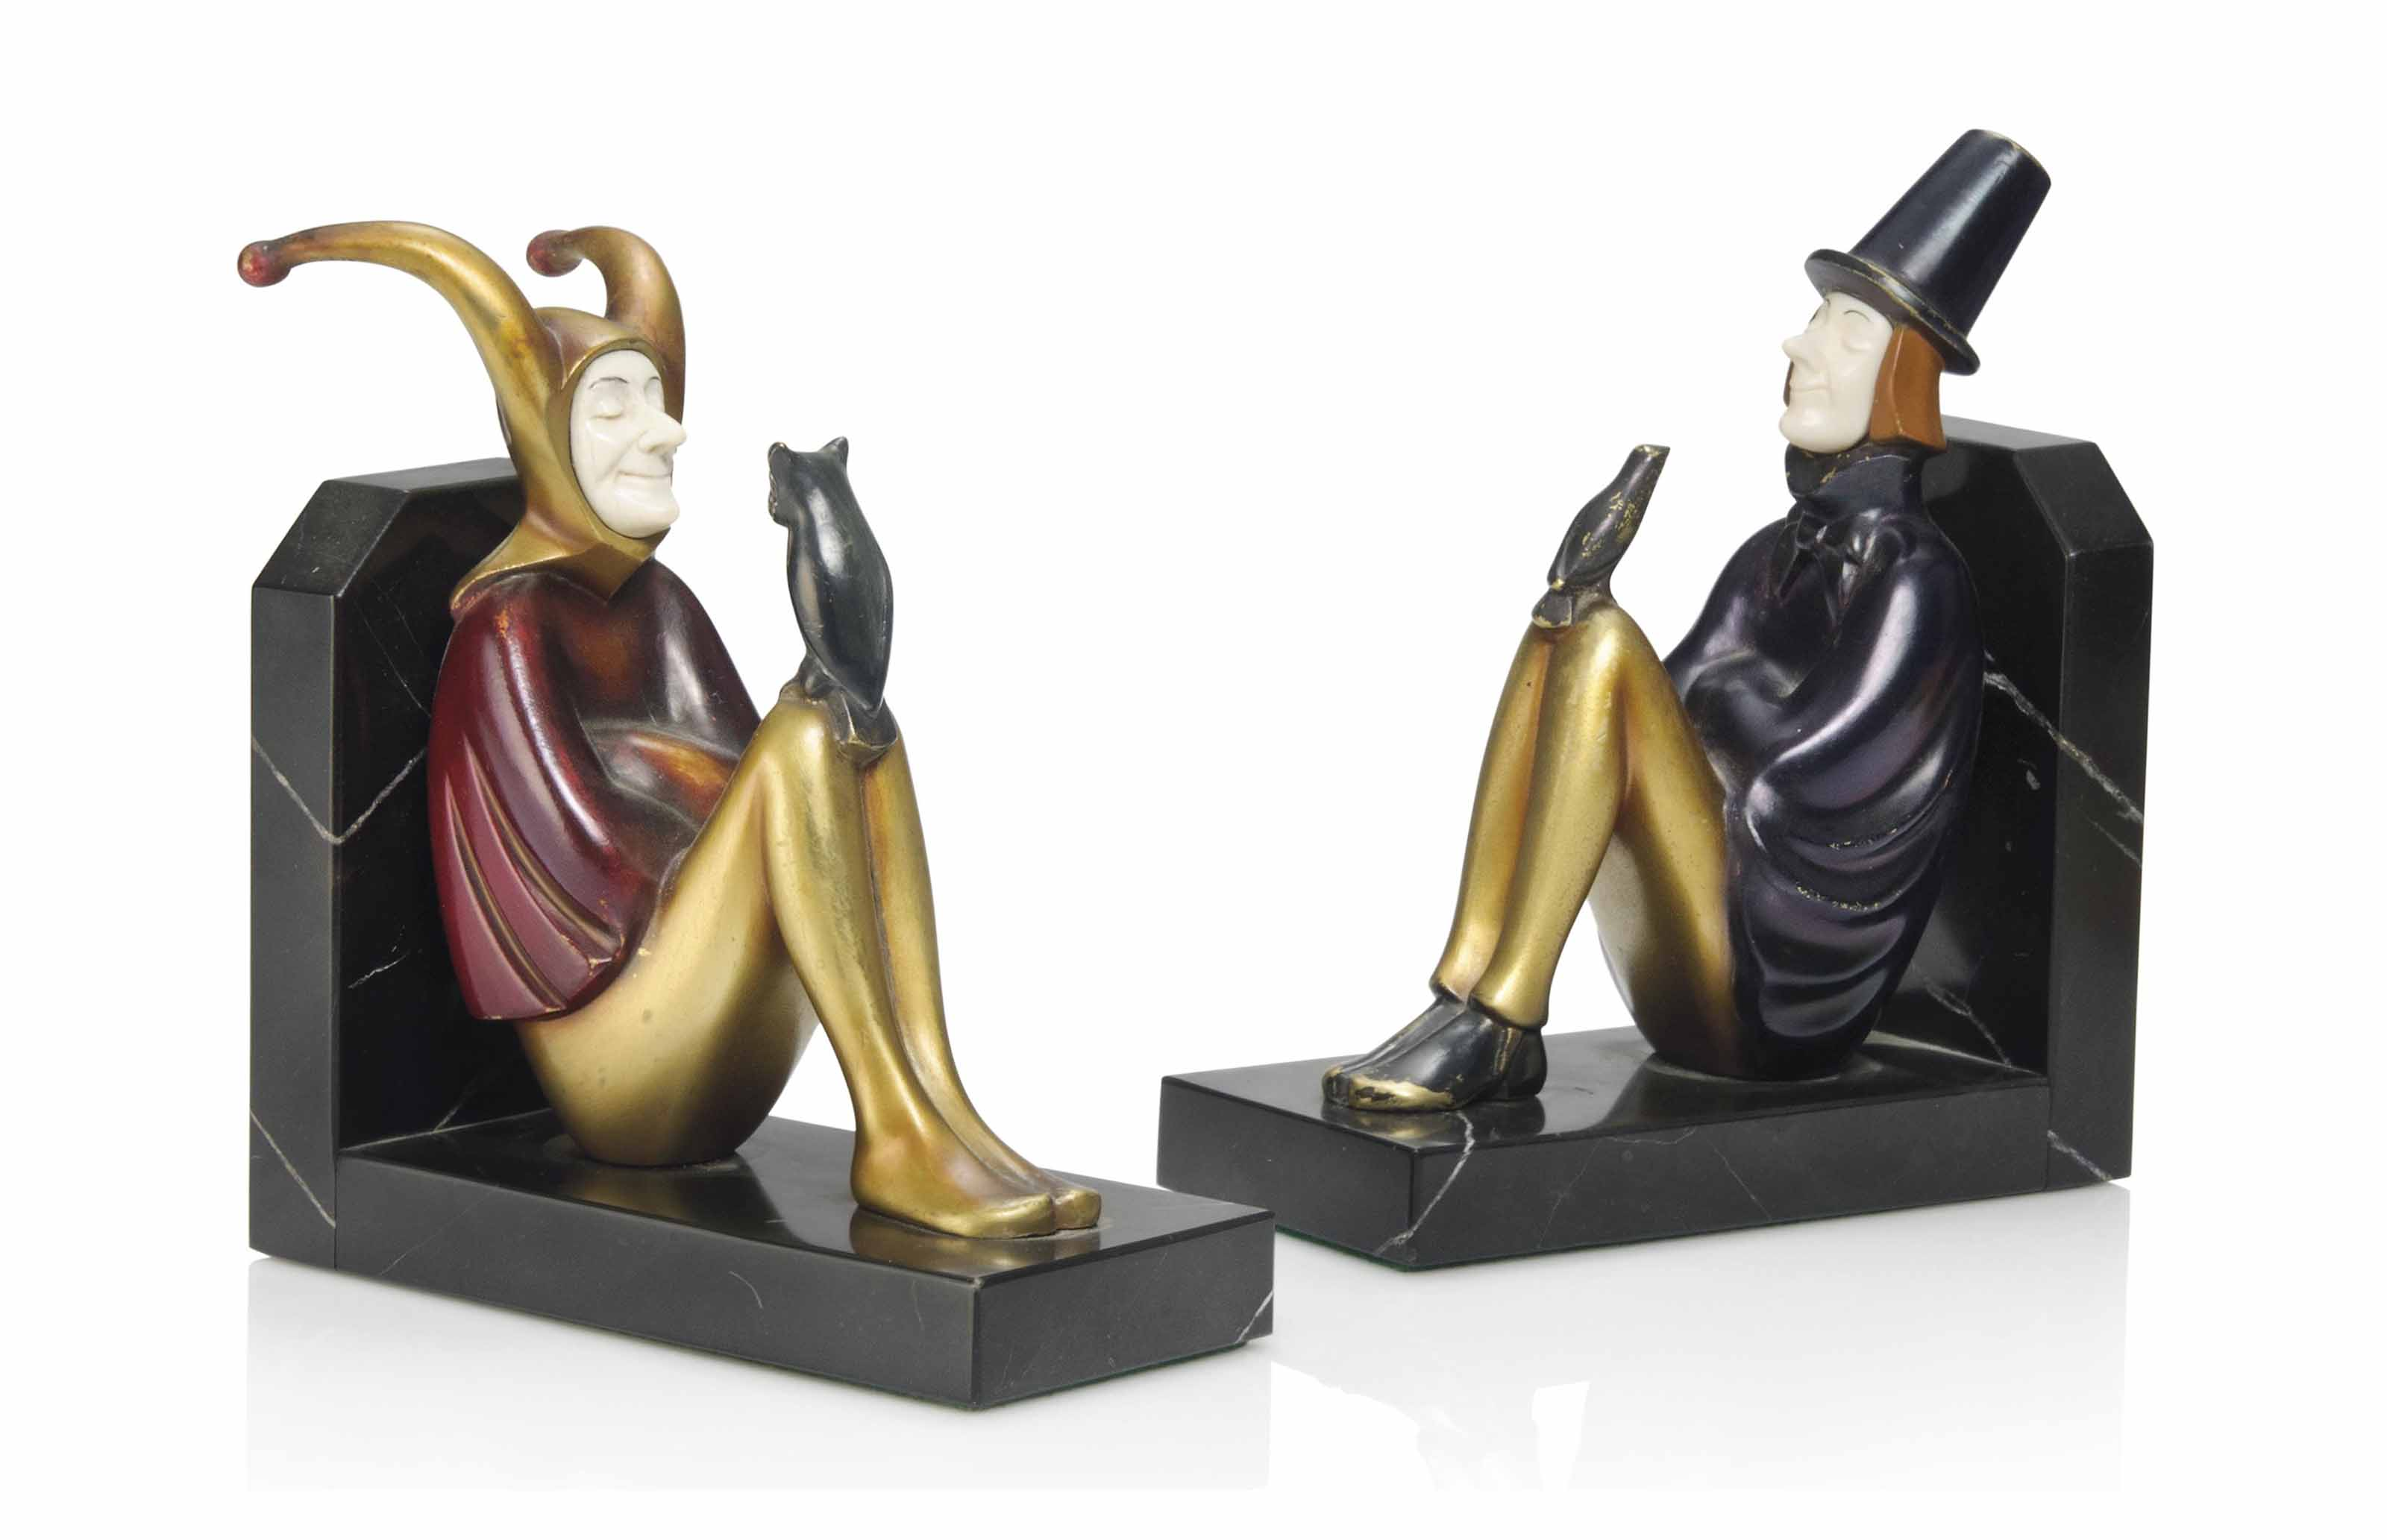 A PAIR OF ROLAND PARIS (1894-1945) COLD-PAINTED BRONZE AND IVORY FIGURAL BOOKENDS